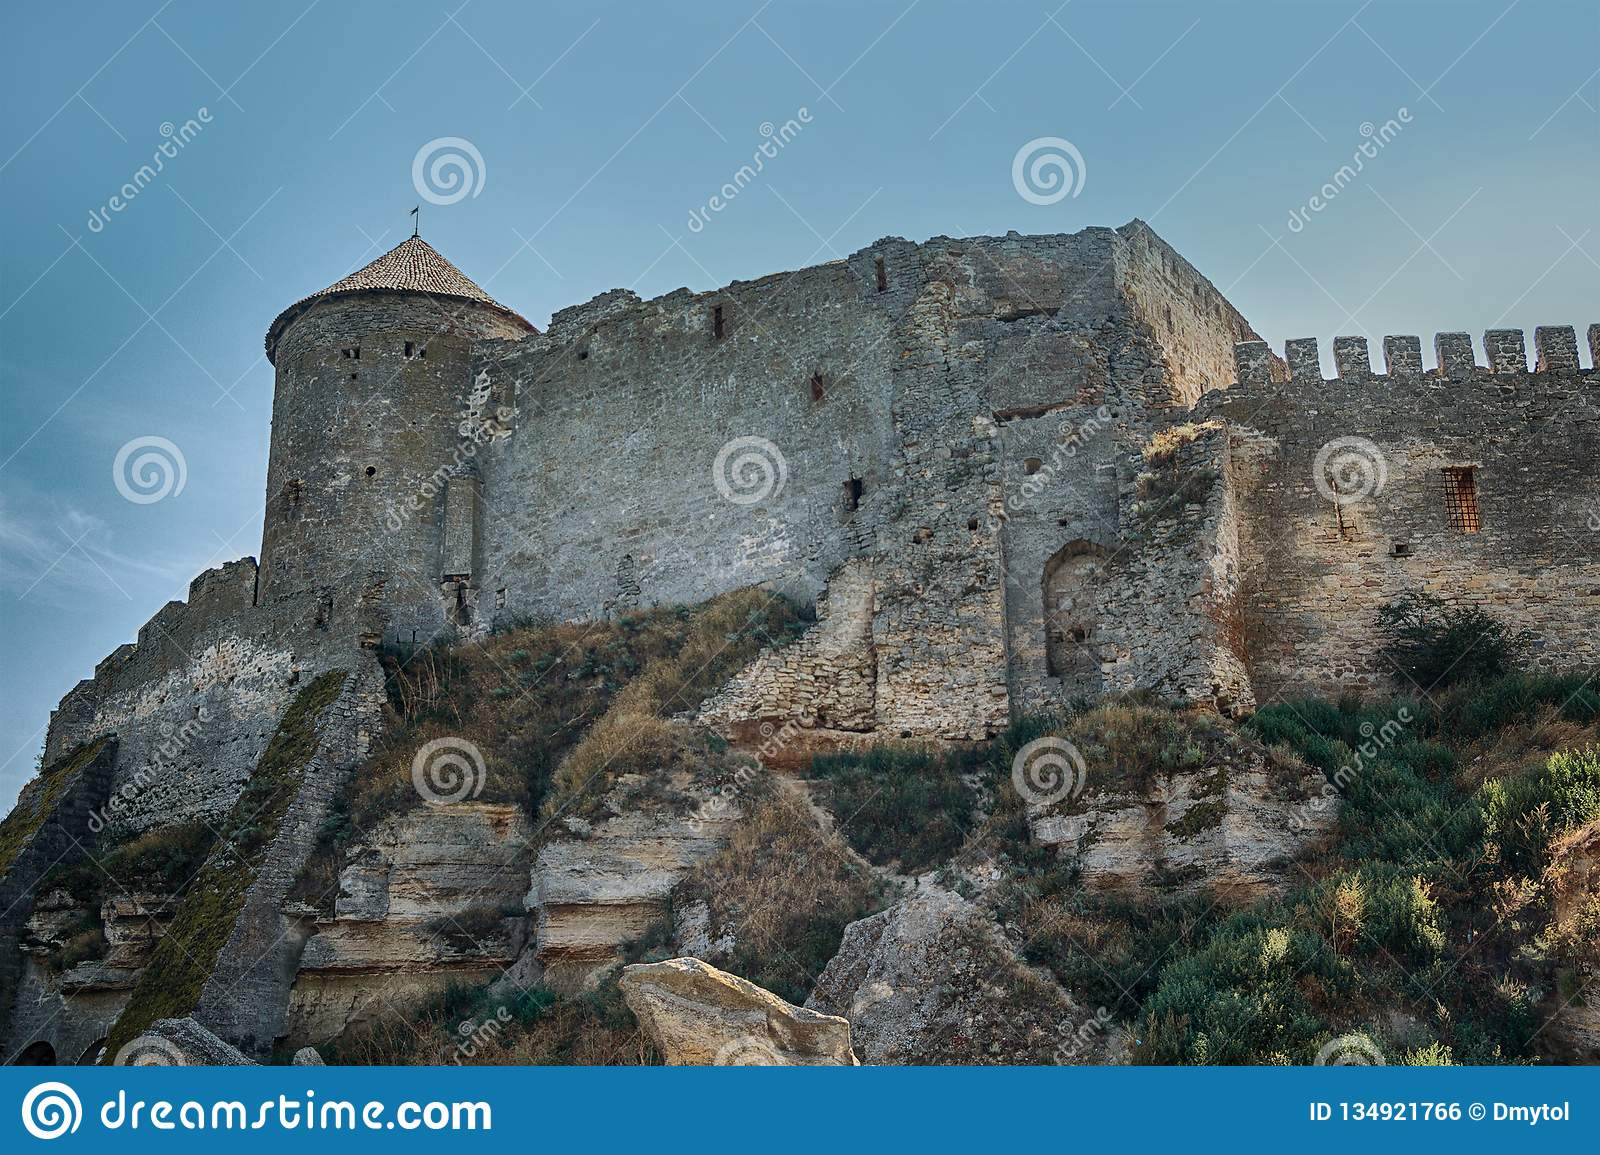 City walls and towers of the old fortress